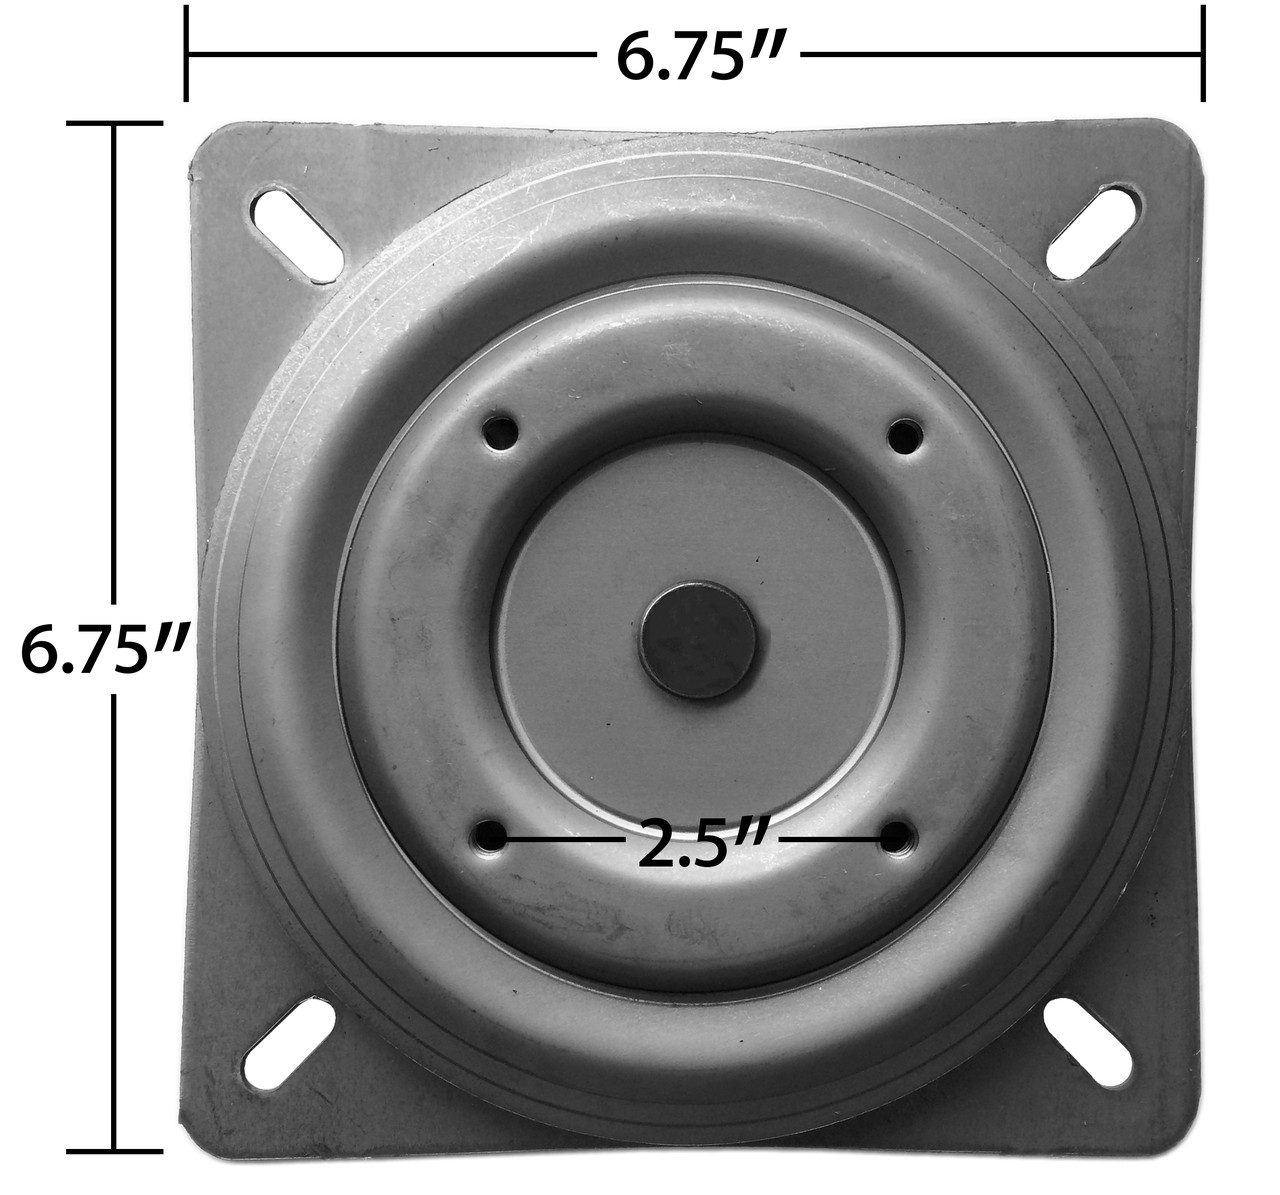 Replacement Bar Stool Swivel 675quot Square w Round  : S5447bottomwdims18871147008246312801280 from www.chairpartsonline.com size 1280 x 1195 jpeg 517kB